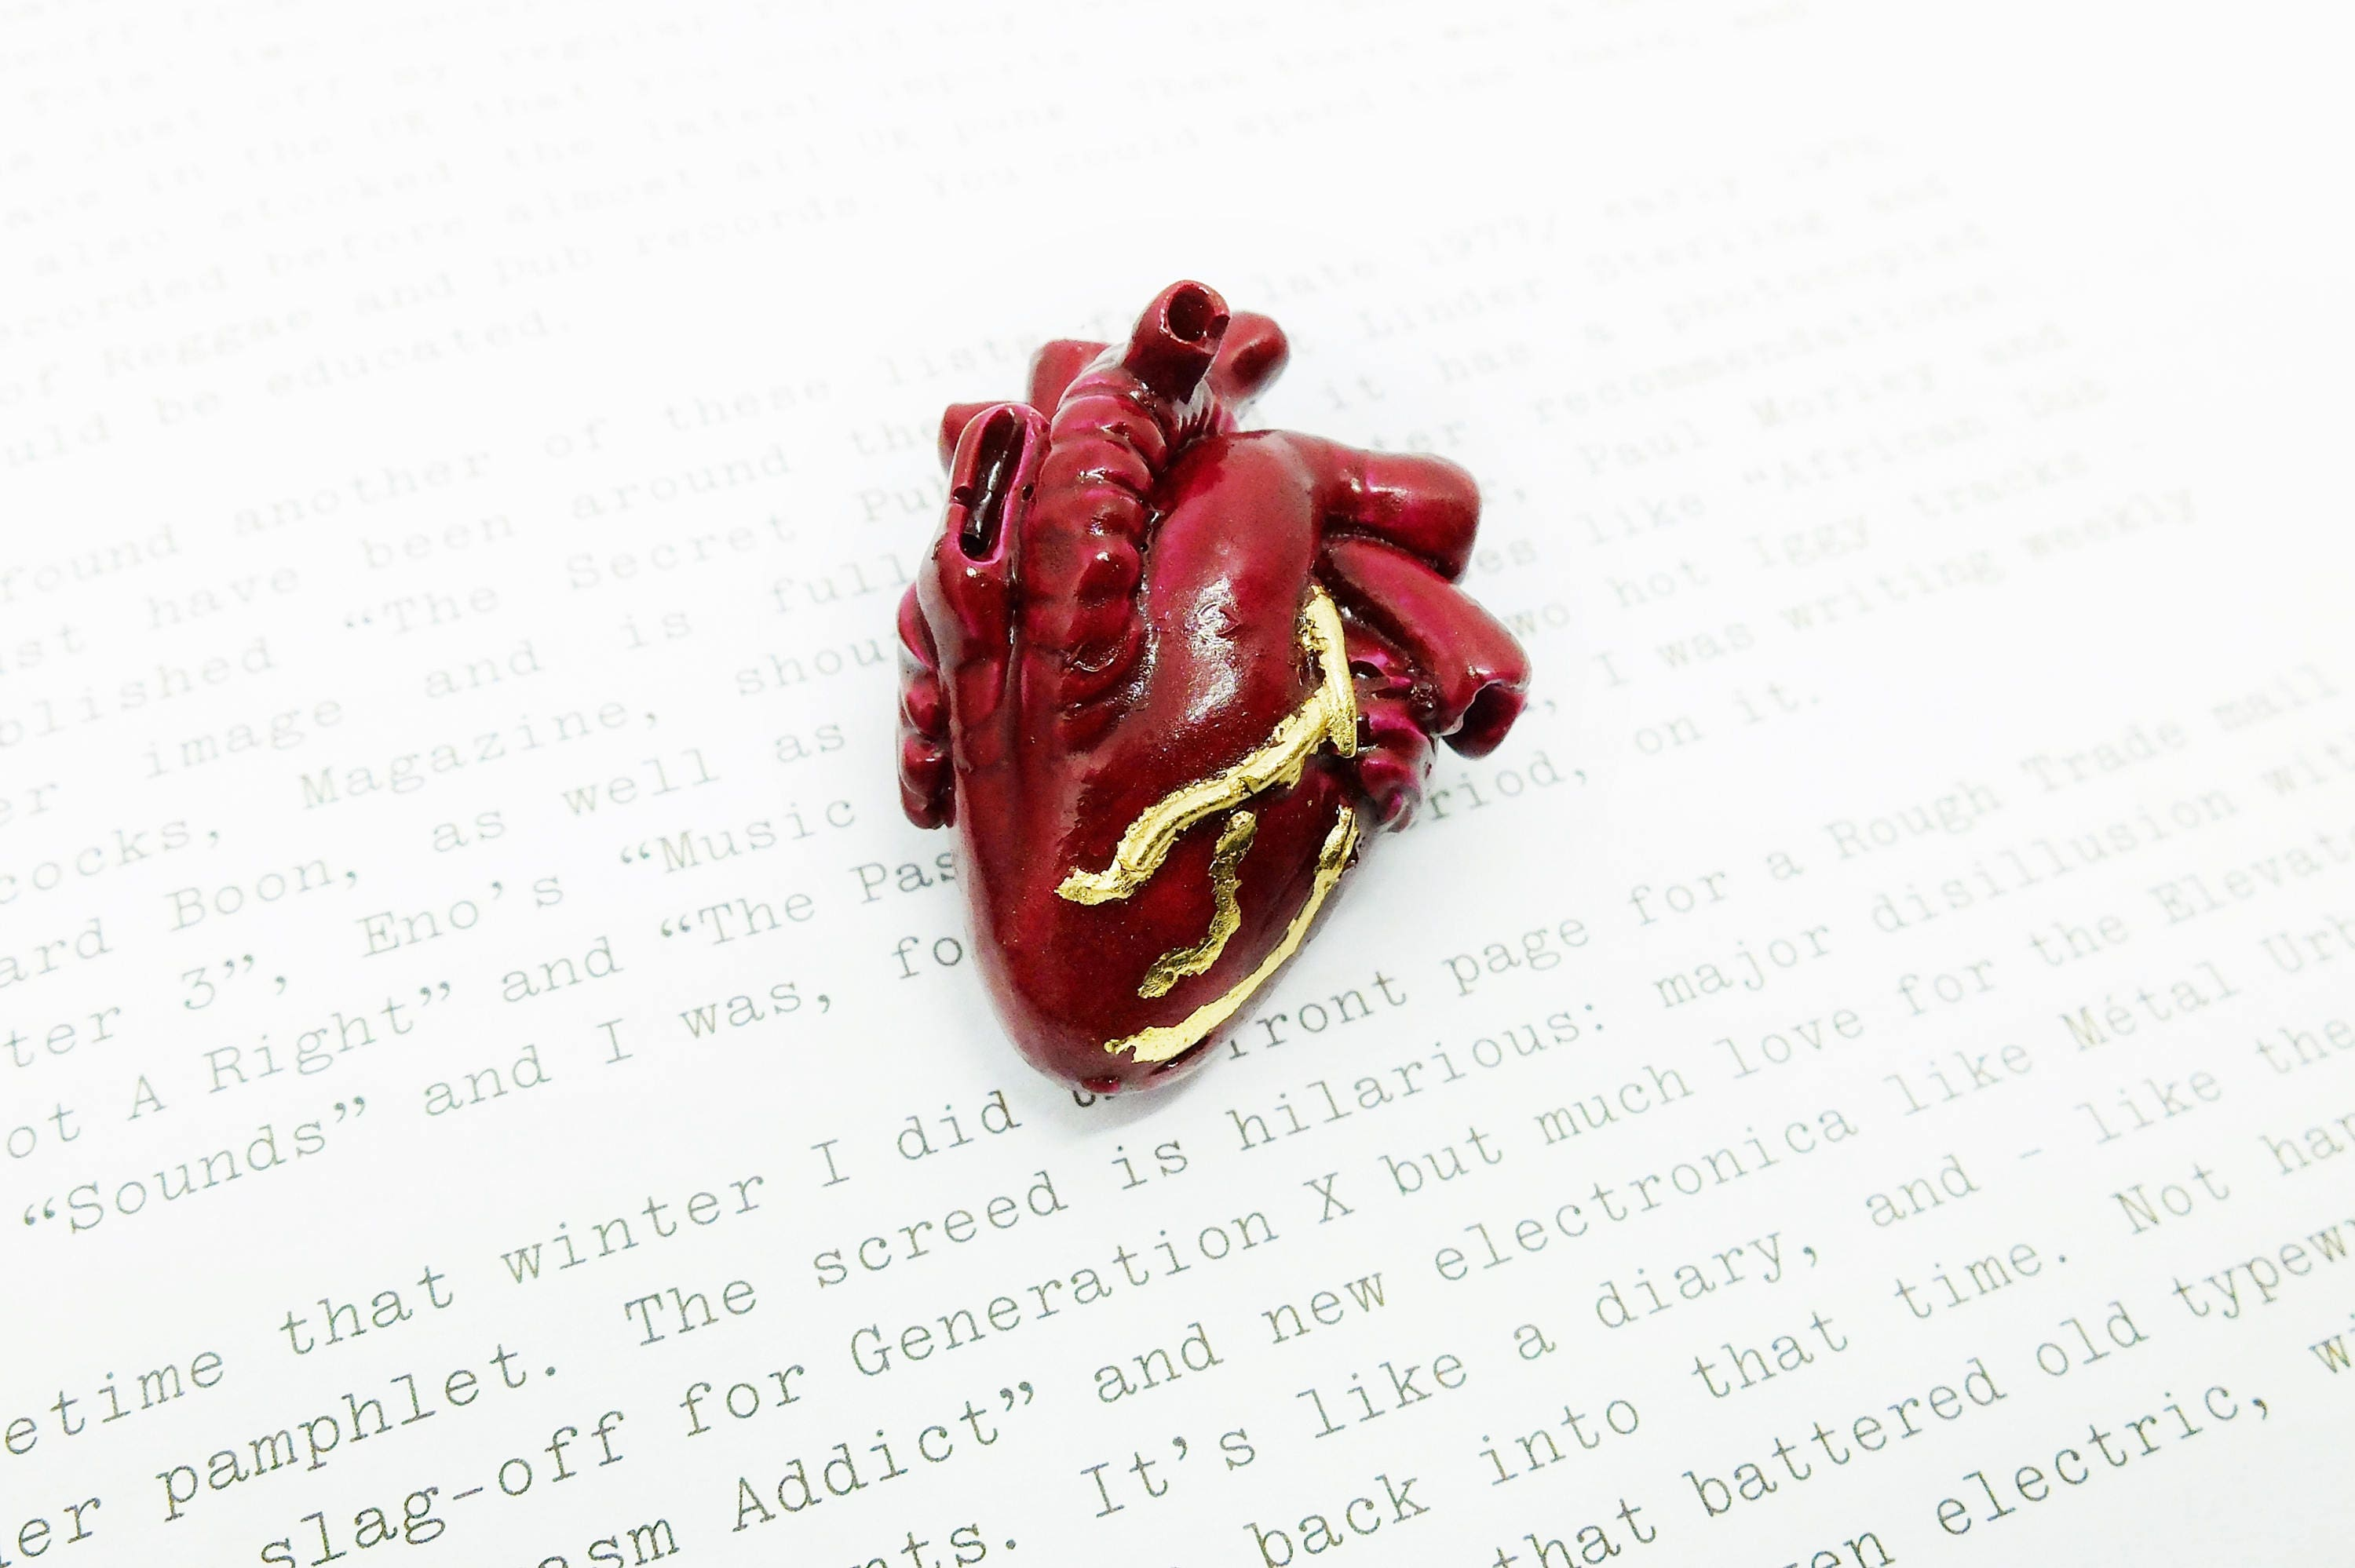 ee25bafe4 Anatomical heart brooch red and gold | Etsy